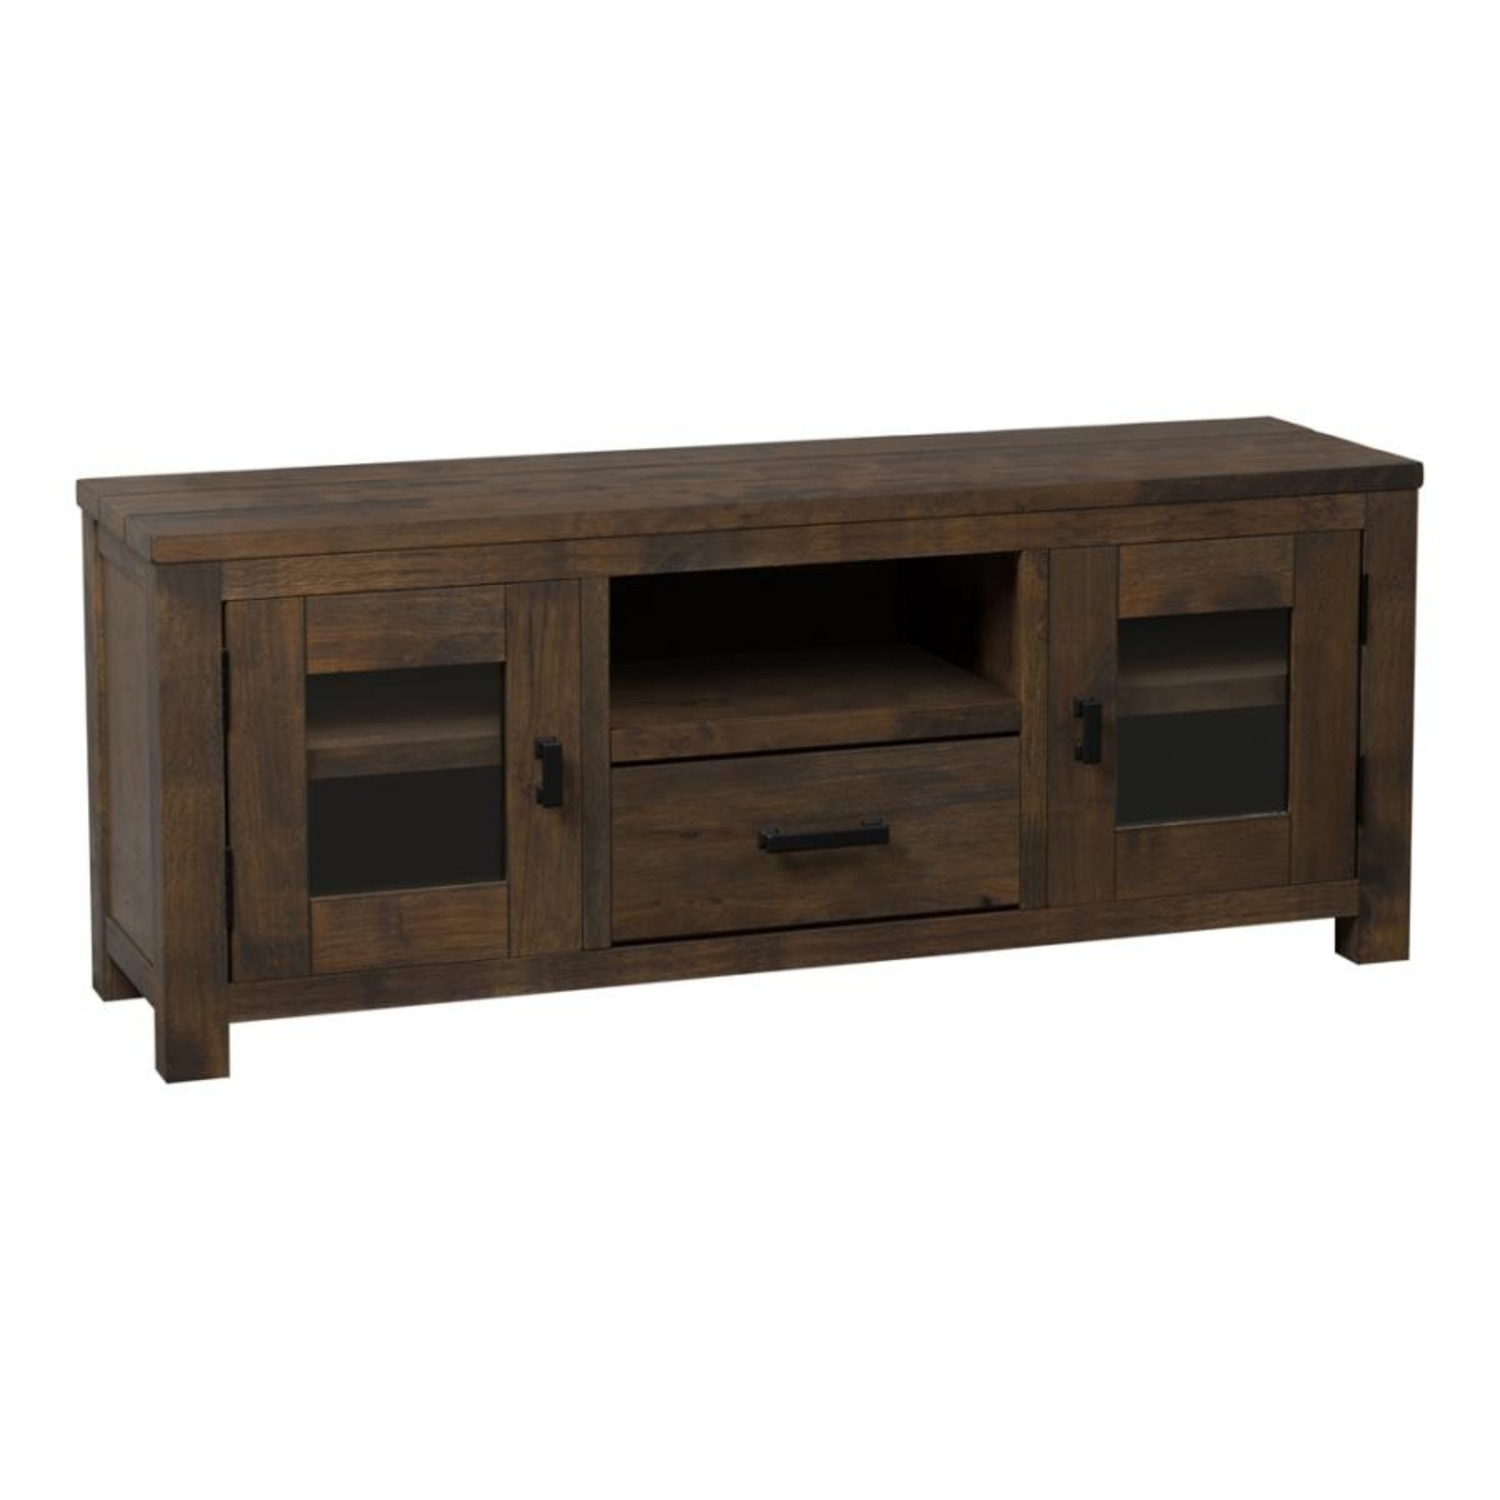 75-Inch TV Console In Rustic Golden Brown - image-0